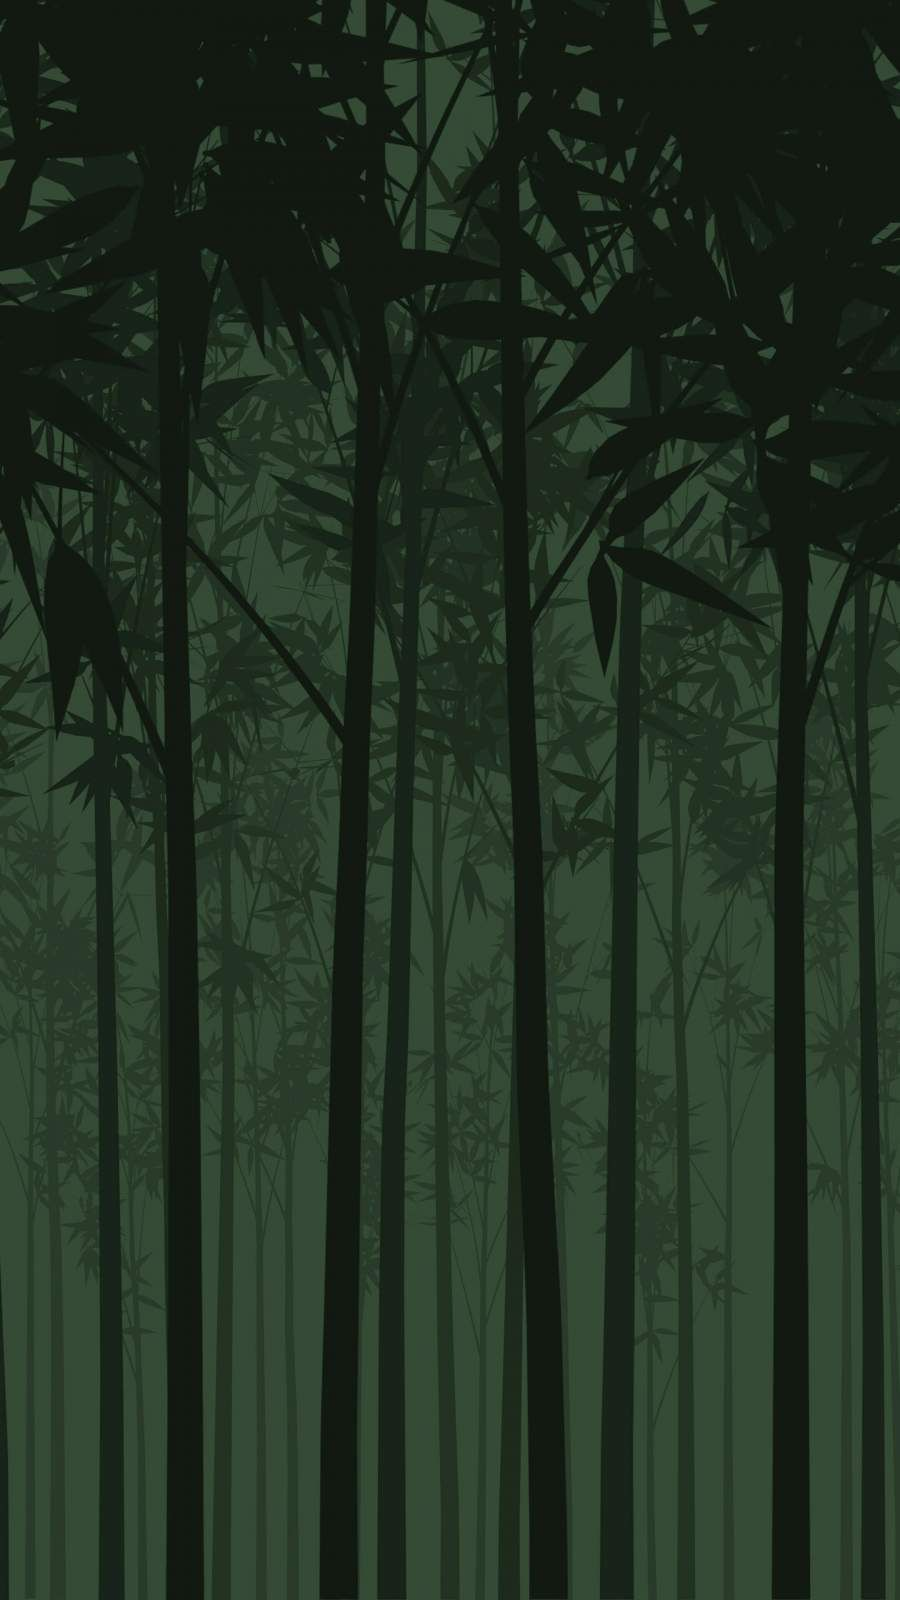 Bamboo Forest Iphone Wallpaper